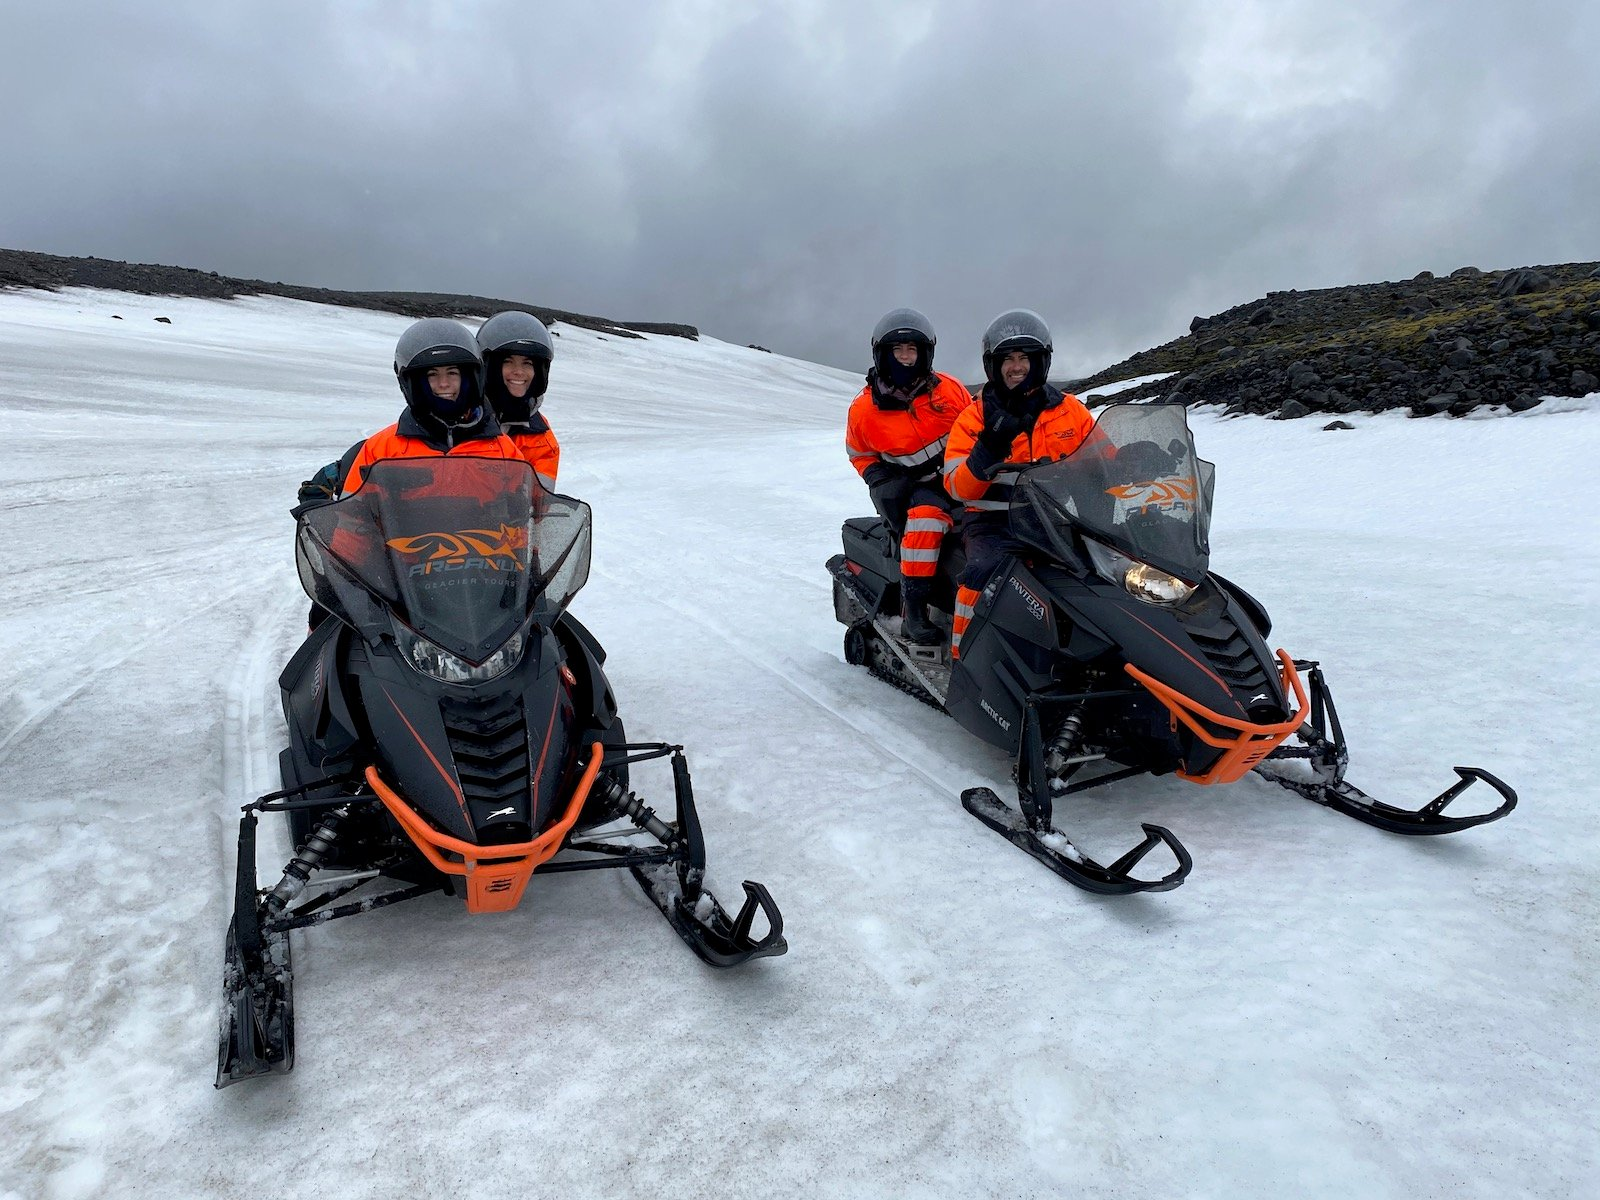 Family posing on snowmobiles in Iceland.